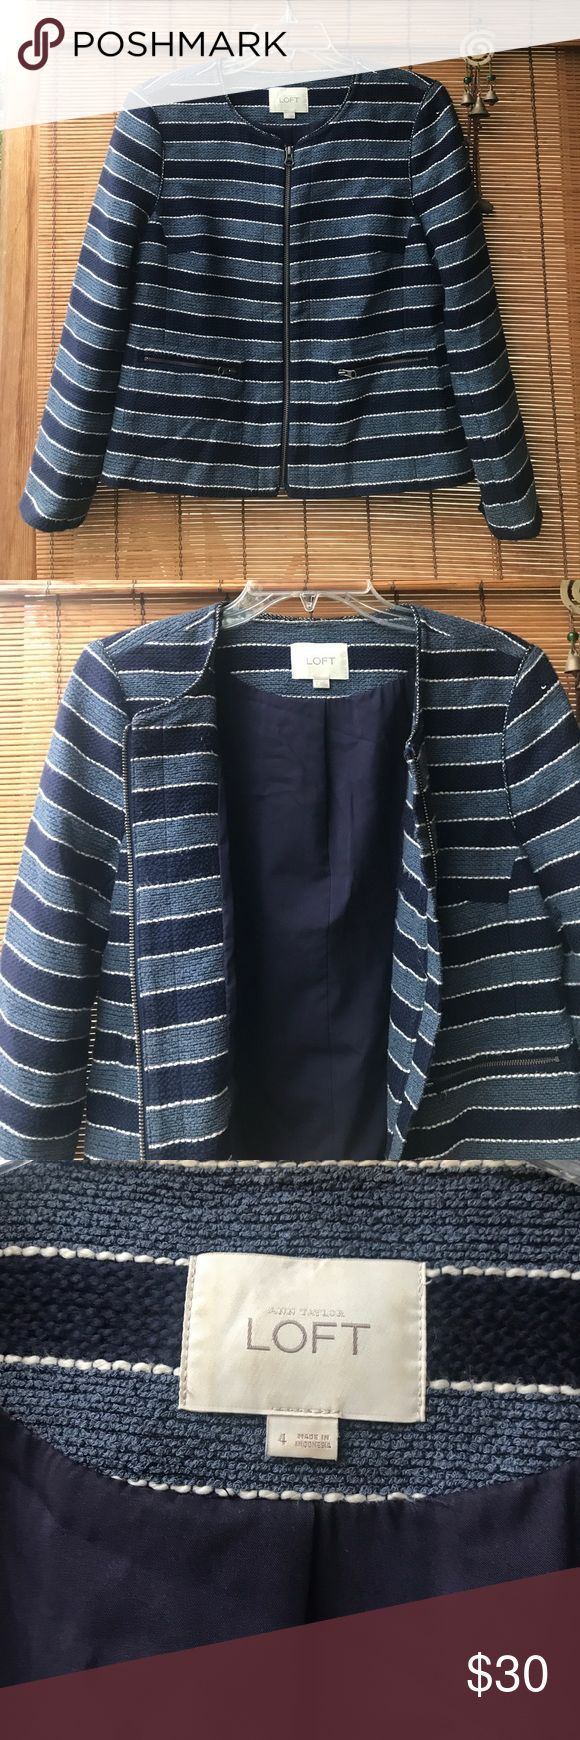 Ann Taylor LOFT striped blazer professional work Super chic blazer from Anne Taylor Loft. Some slight piling from washing, but still in great condition. LOFT Jackets & Coats Blazers